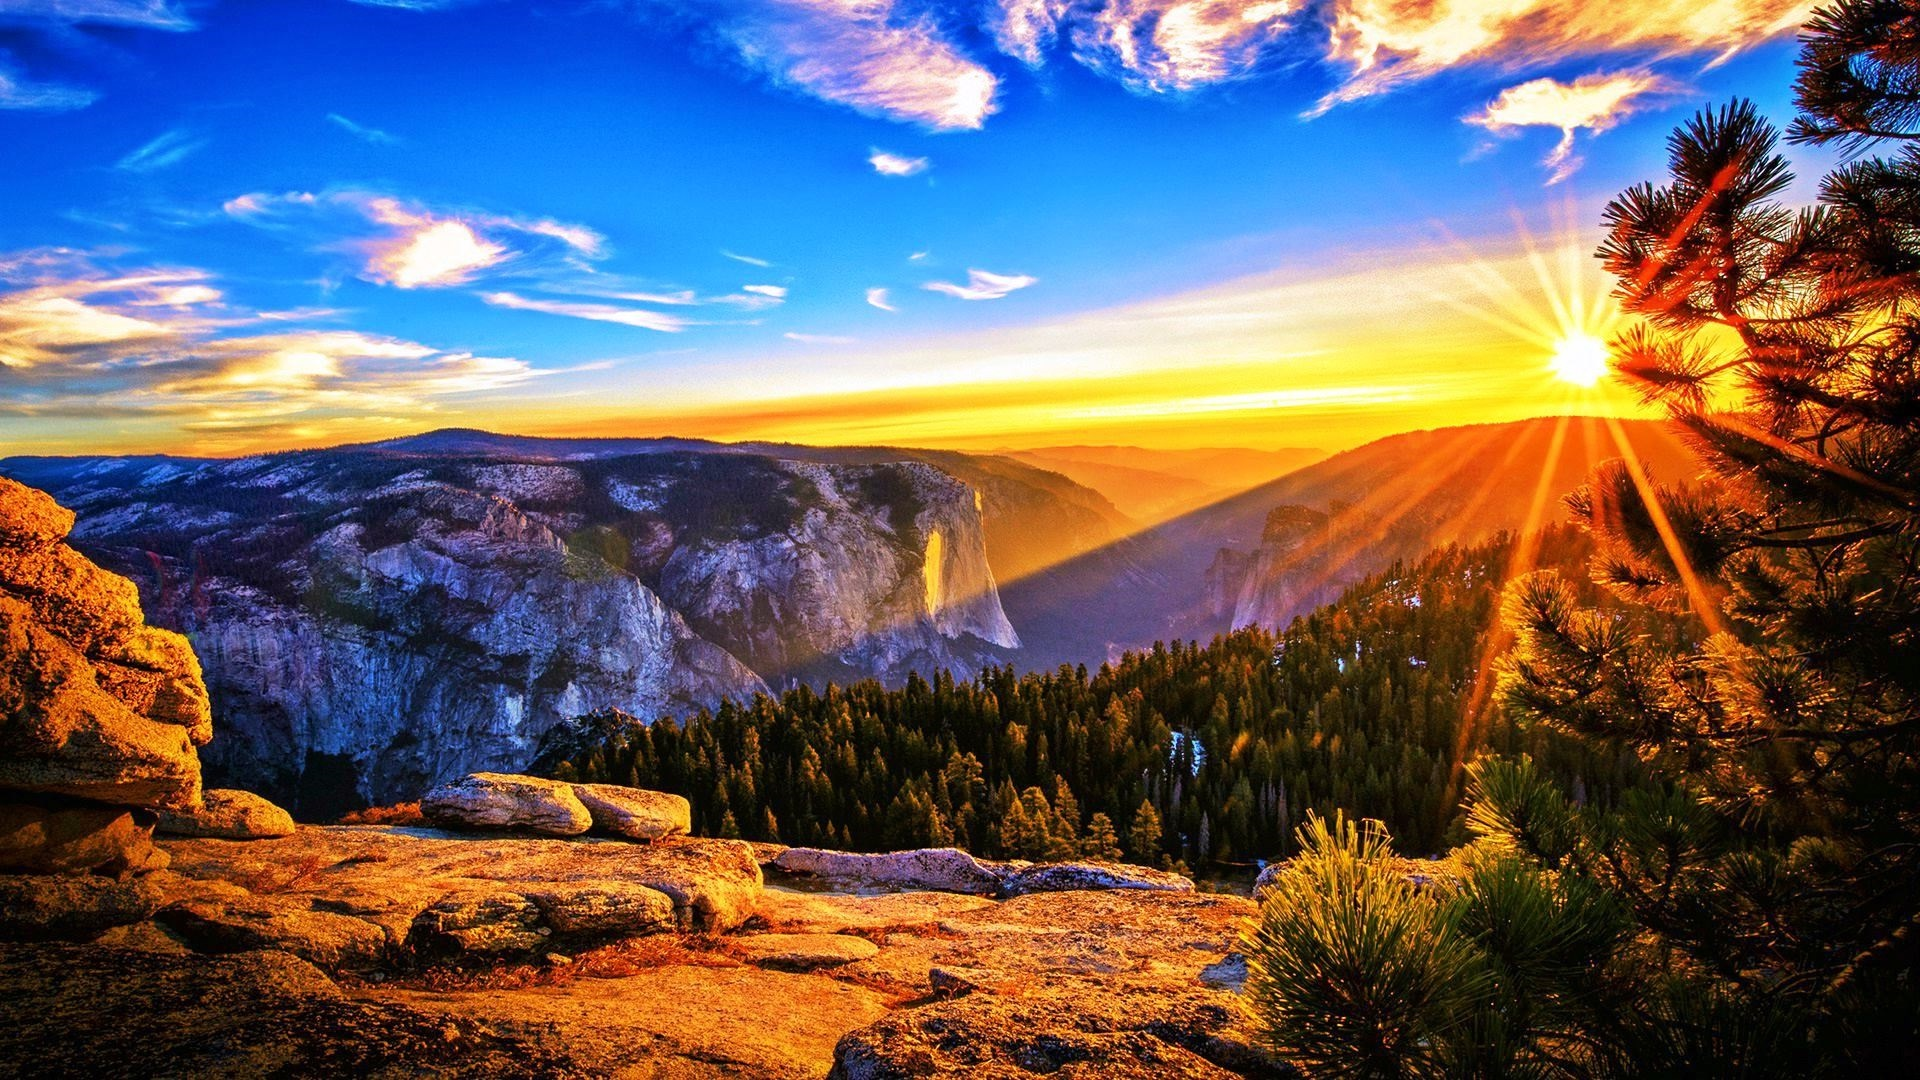 July 4th Weekend @ Yosemite!! What could be better? 3-day Holiday Weekend!